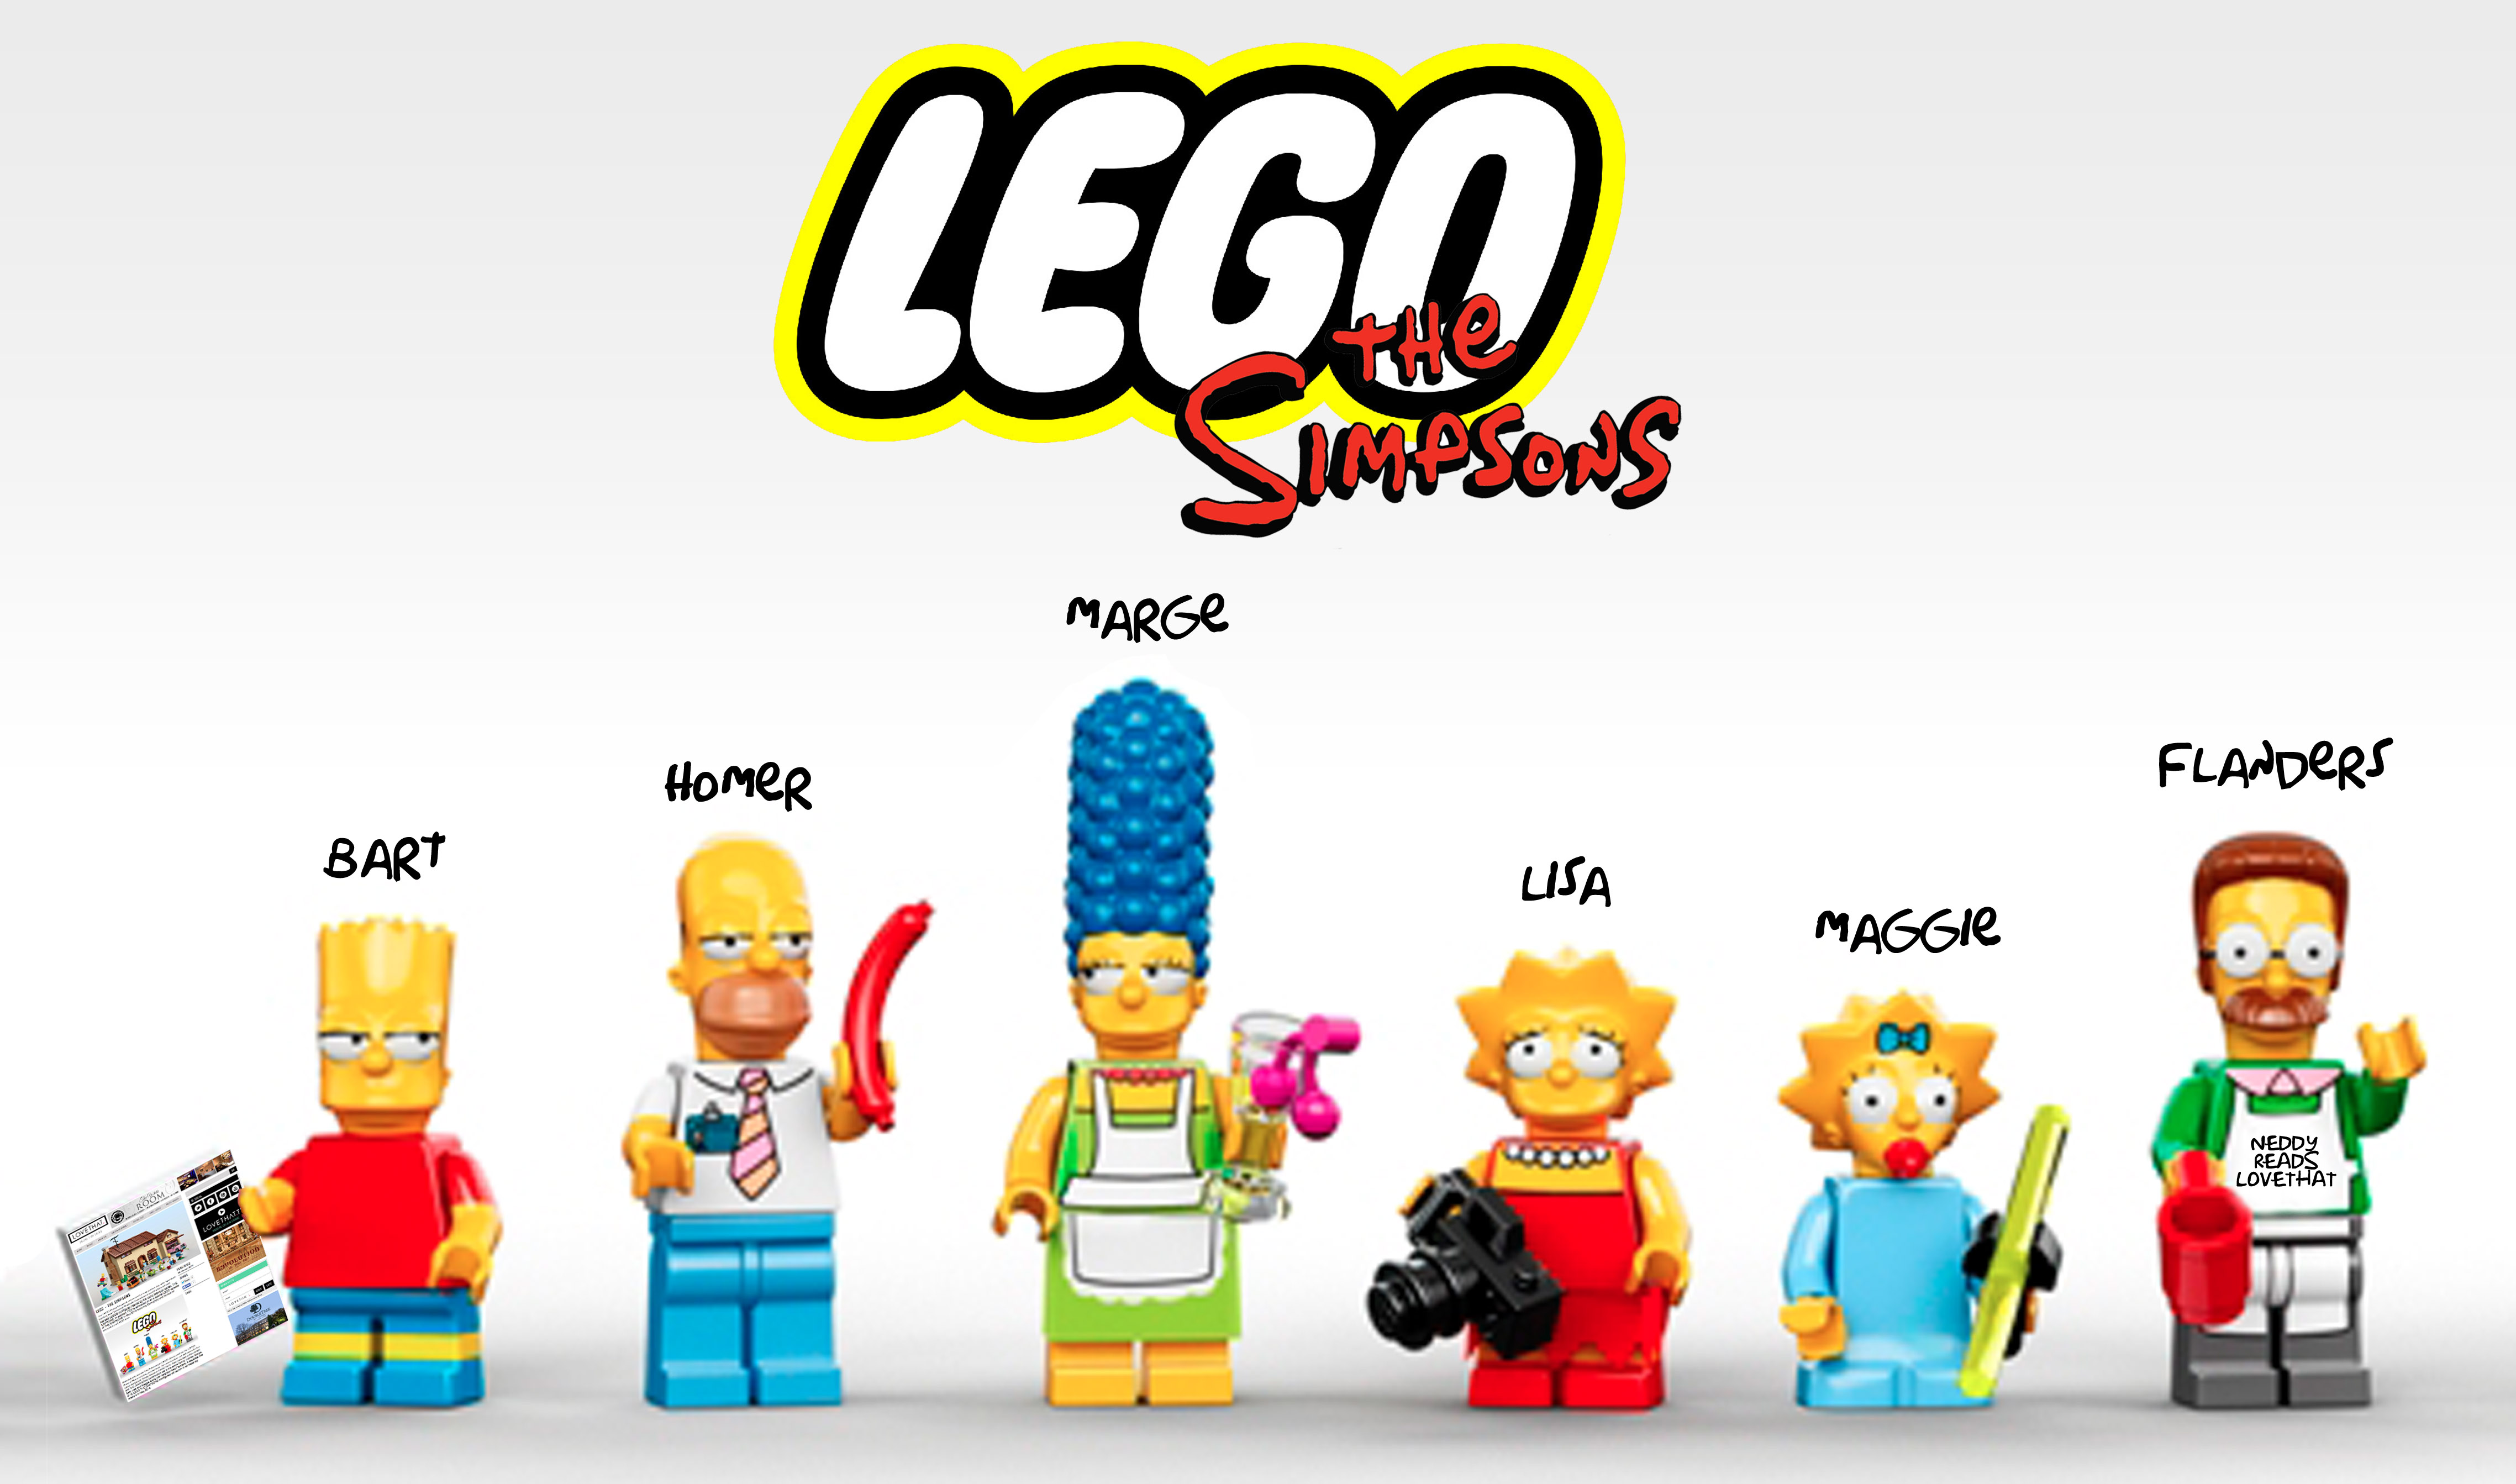 Simpsons-Characters-Lego-LoveThat